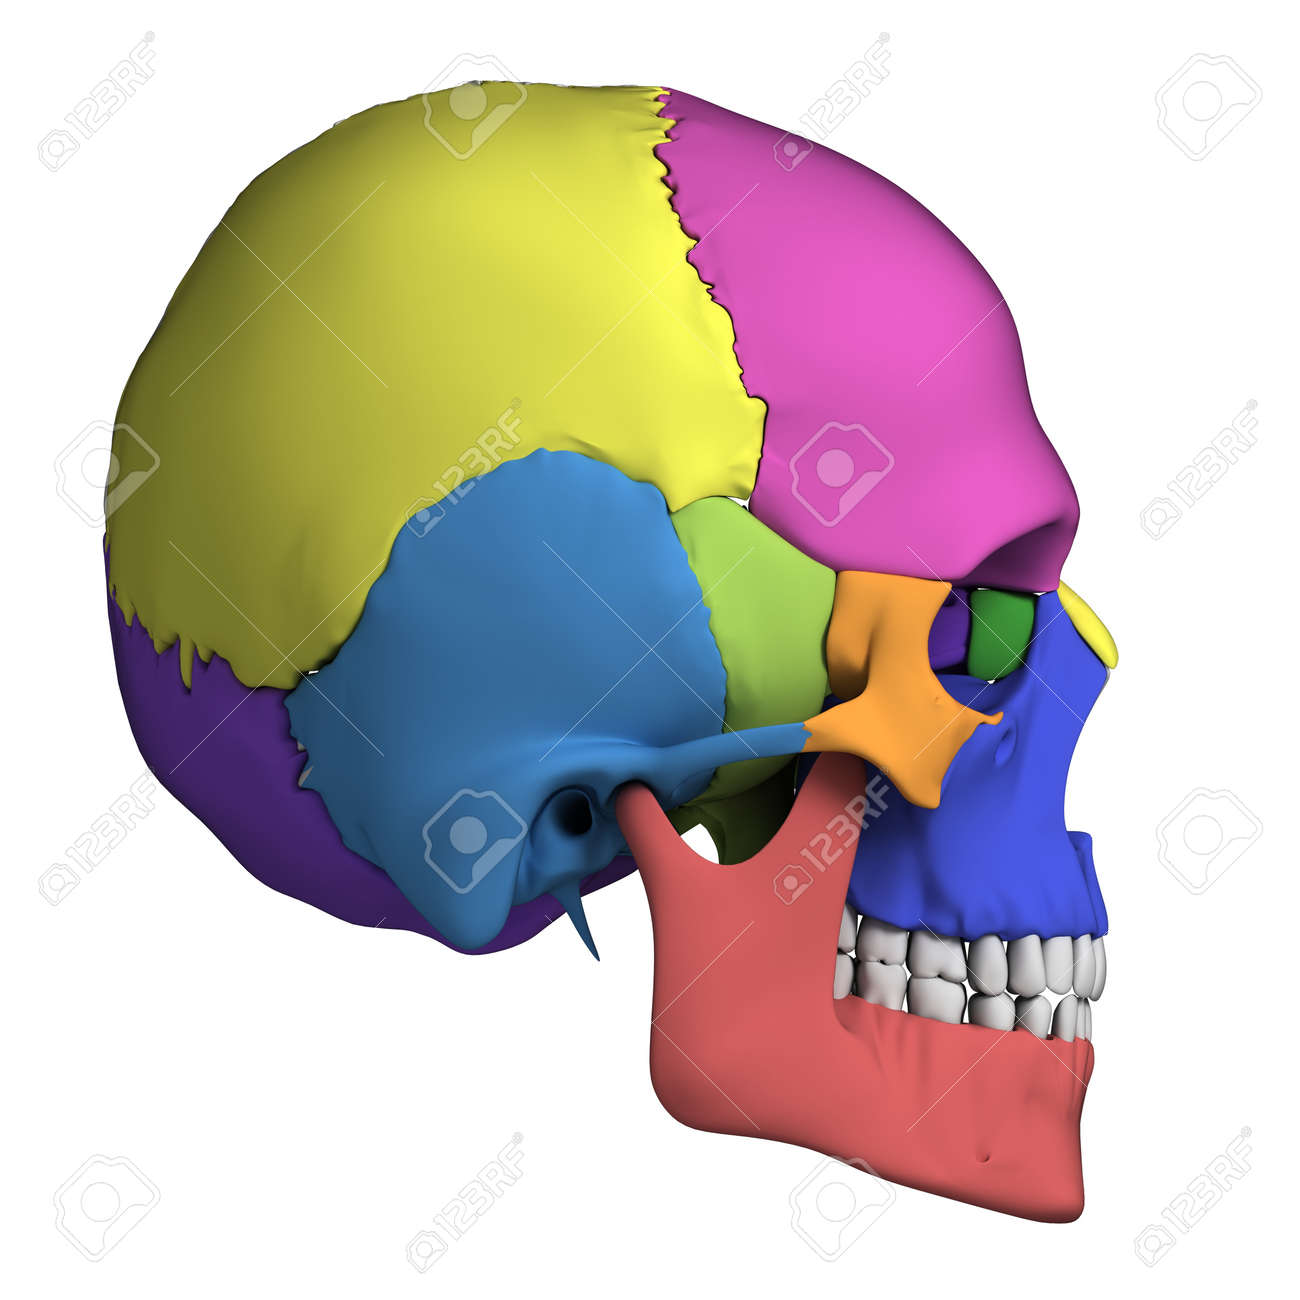 3d Rendered Illustration - Human Skull Anatomy Stock Photo, Picture ...